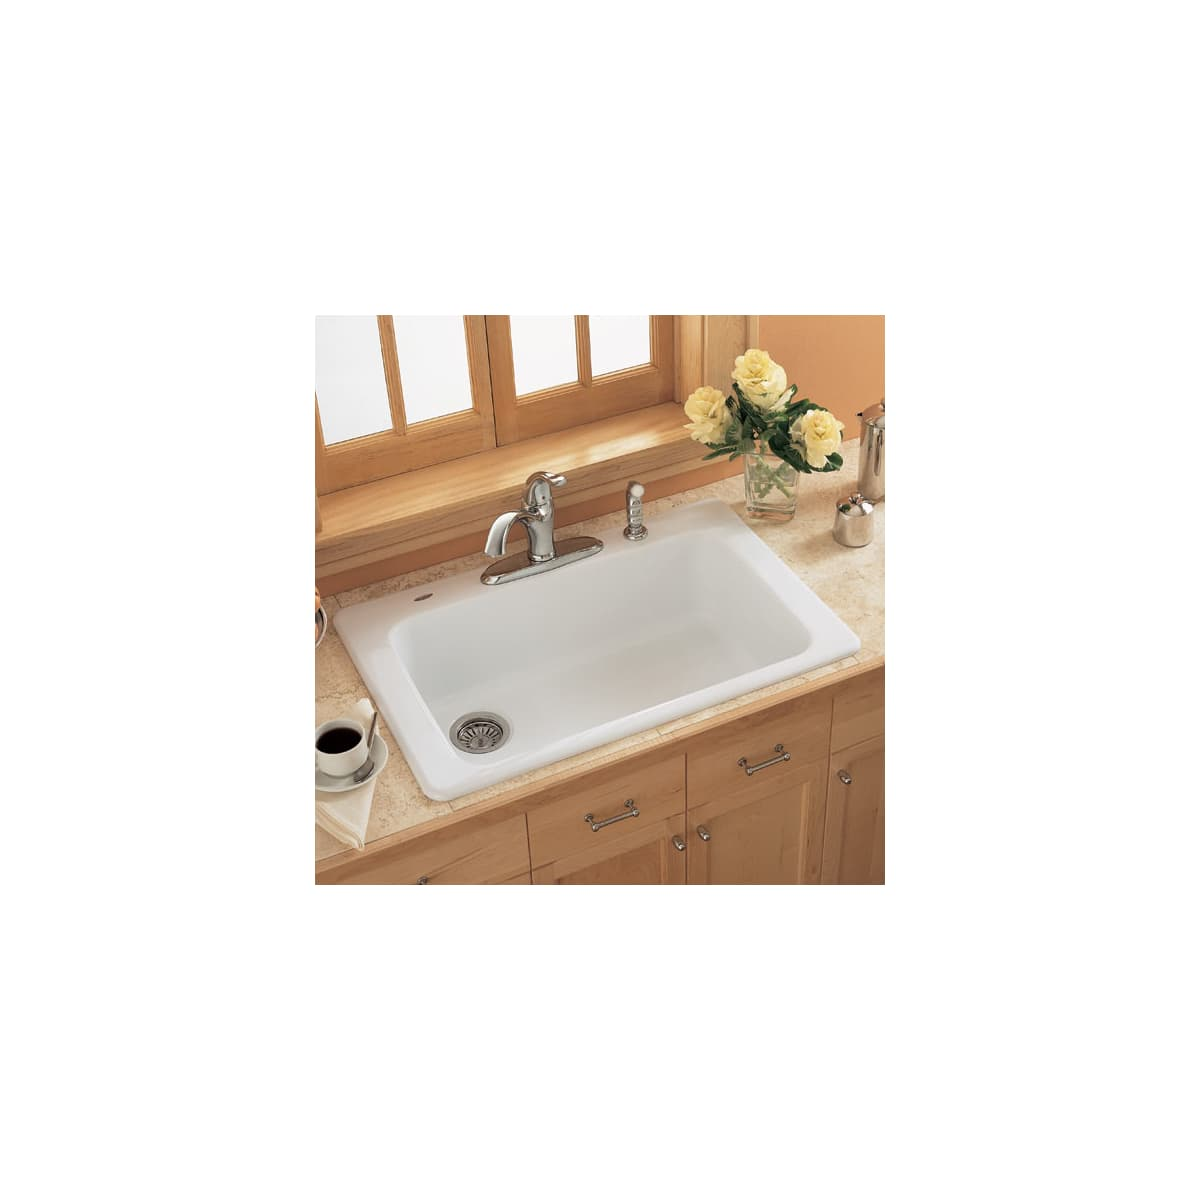 American Standard 7193 804 345 Bisque Single Basin Americast Kitchen Sink From The Lakeland Series Faucet